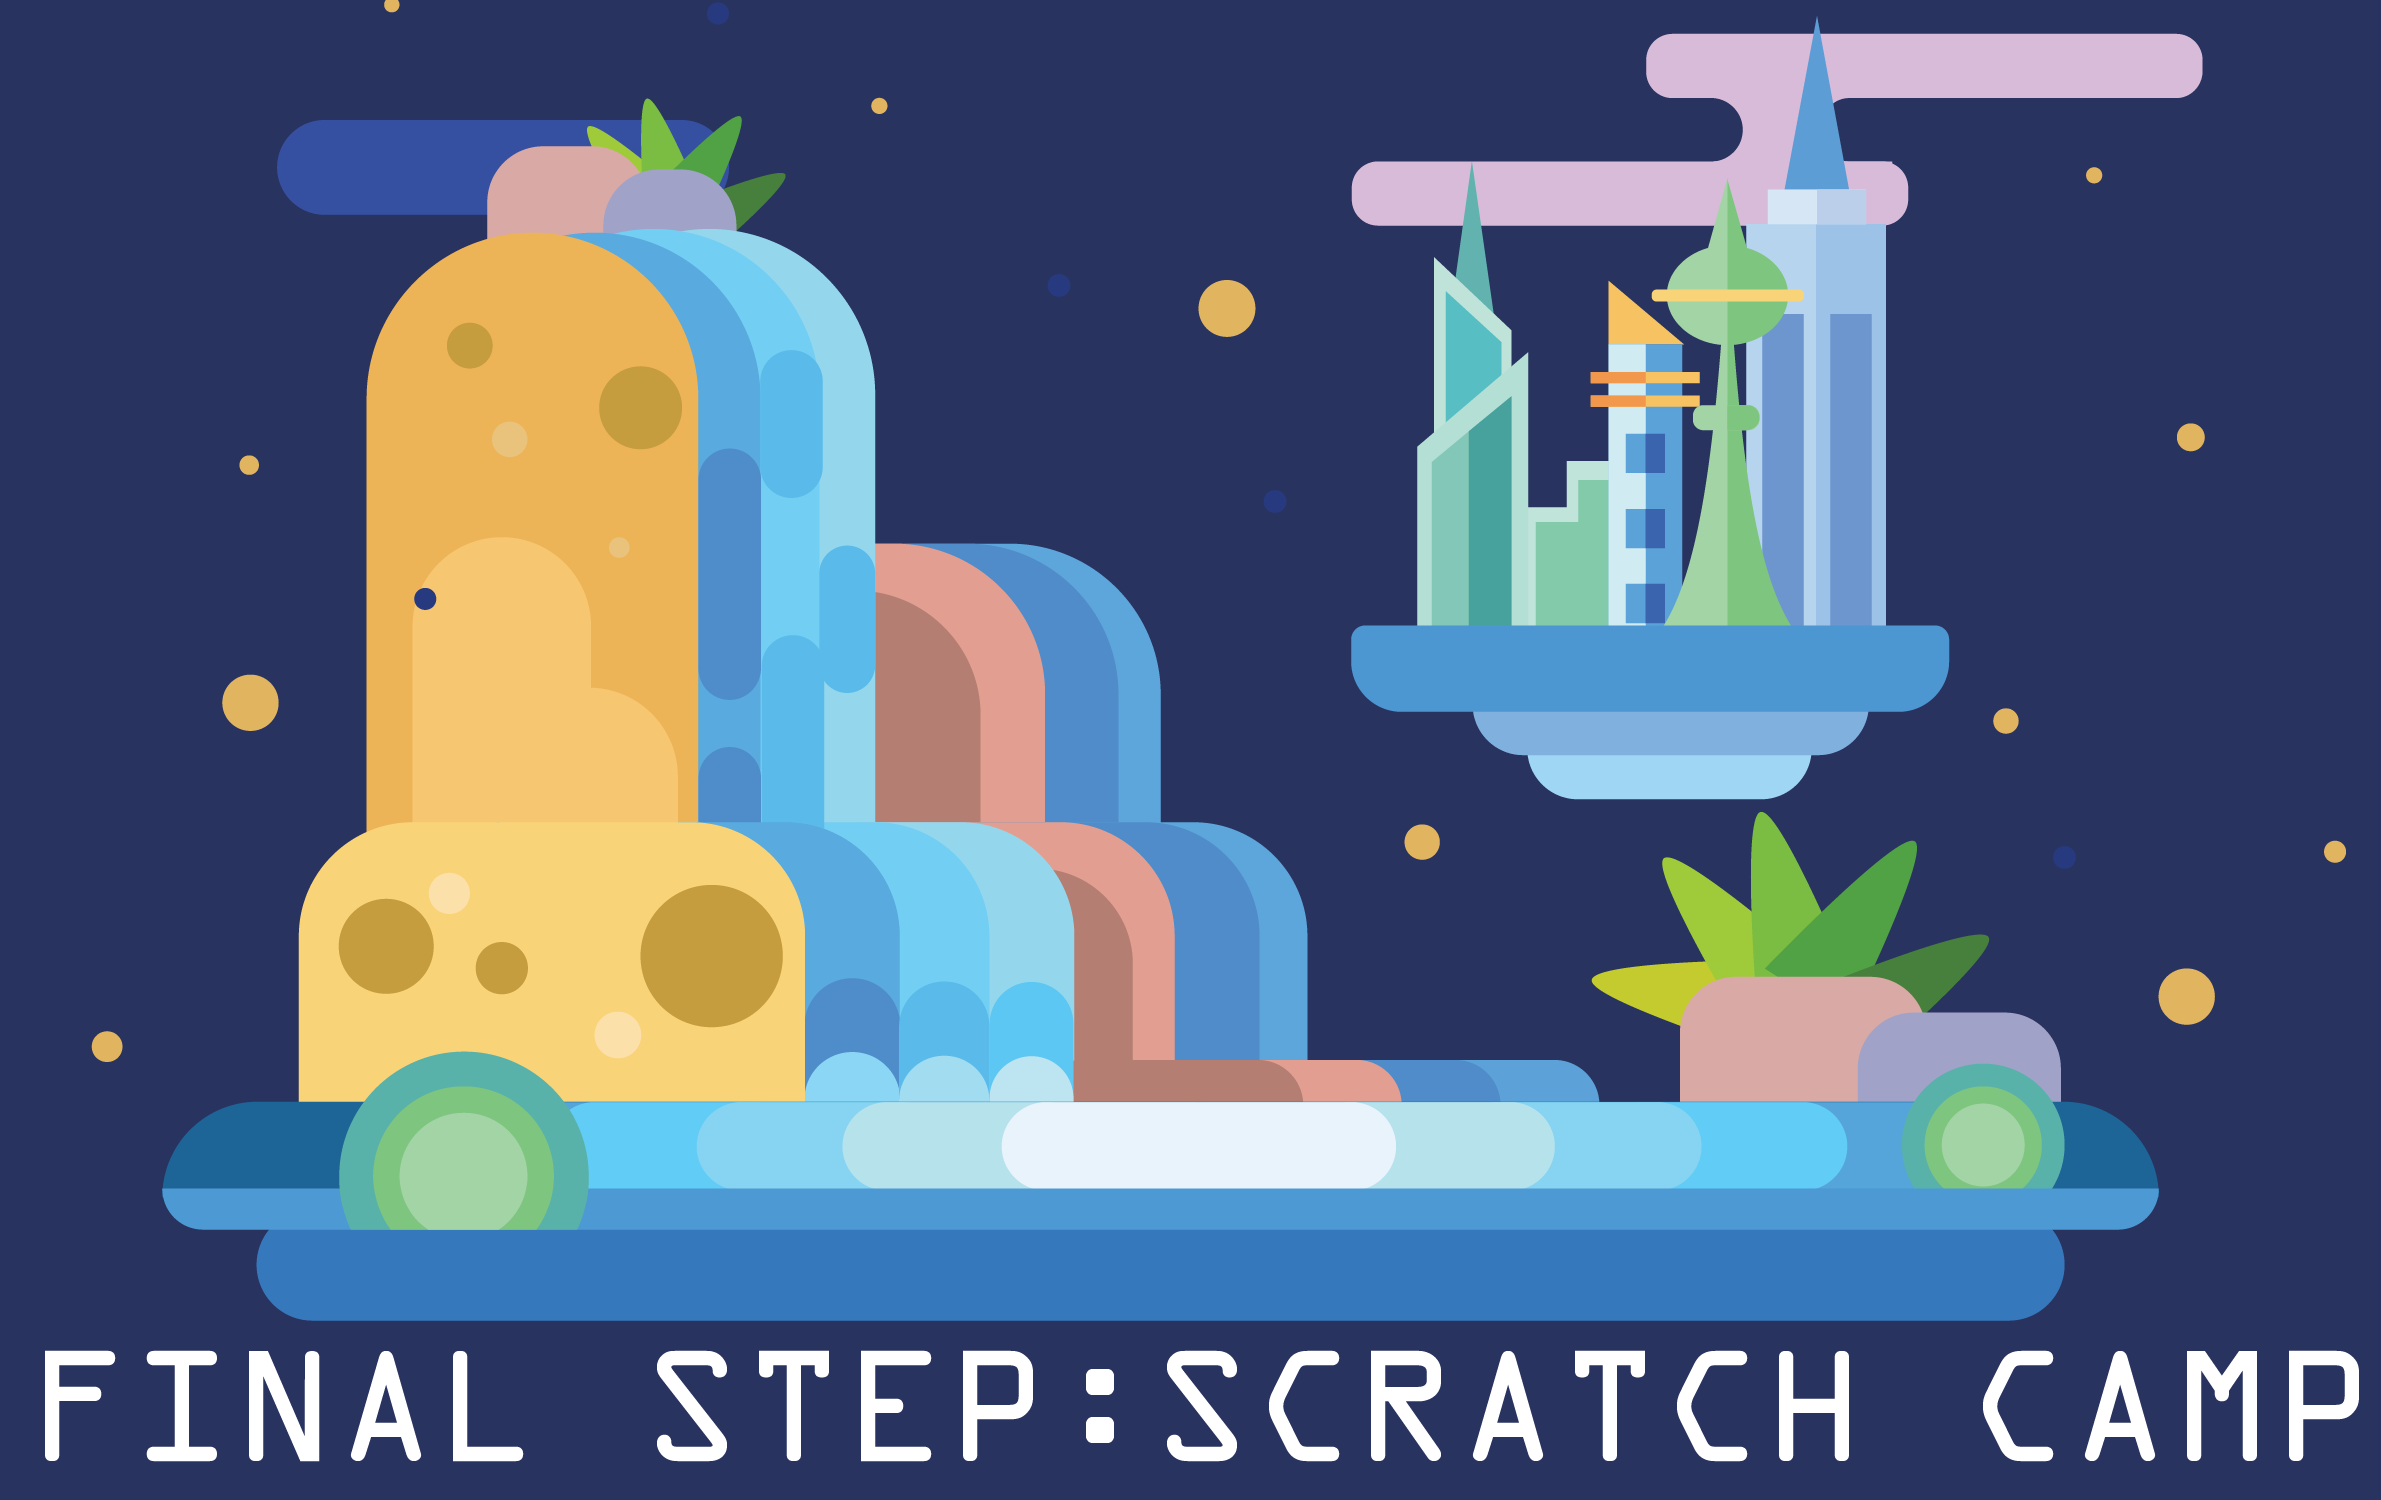 Scratch is a free programming language and online community